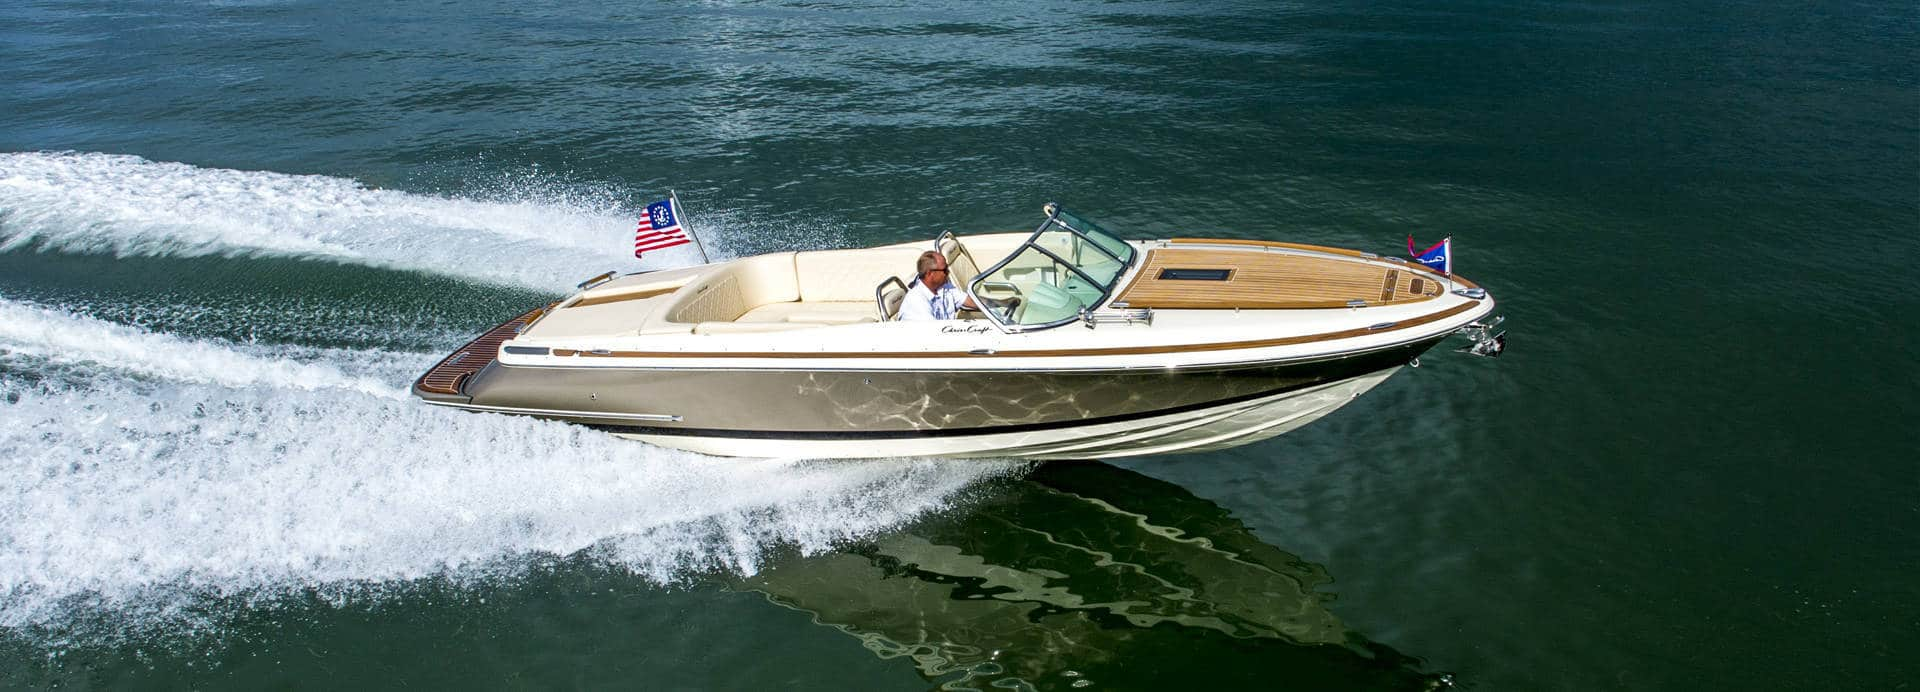 Dave bofill marine chris craft boats for sale long island for Chris craft corsair 32 for sale